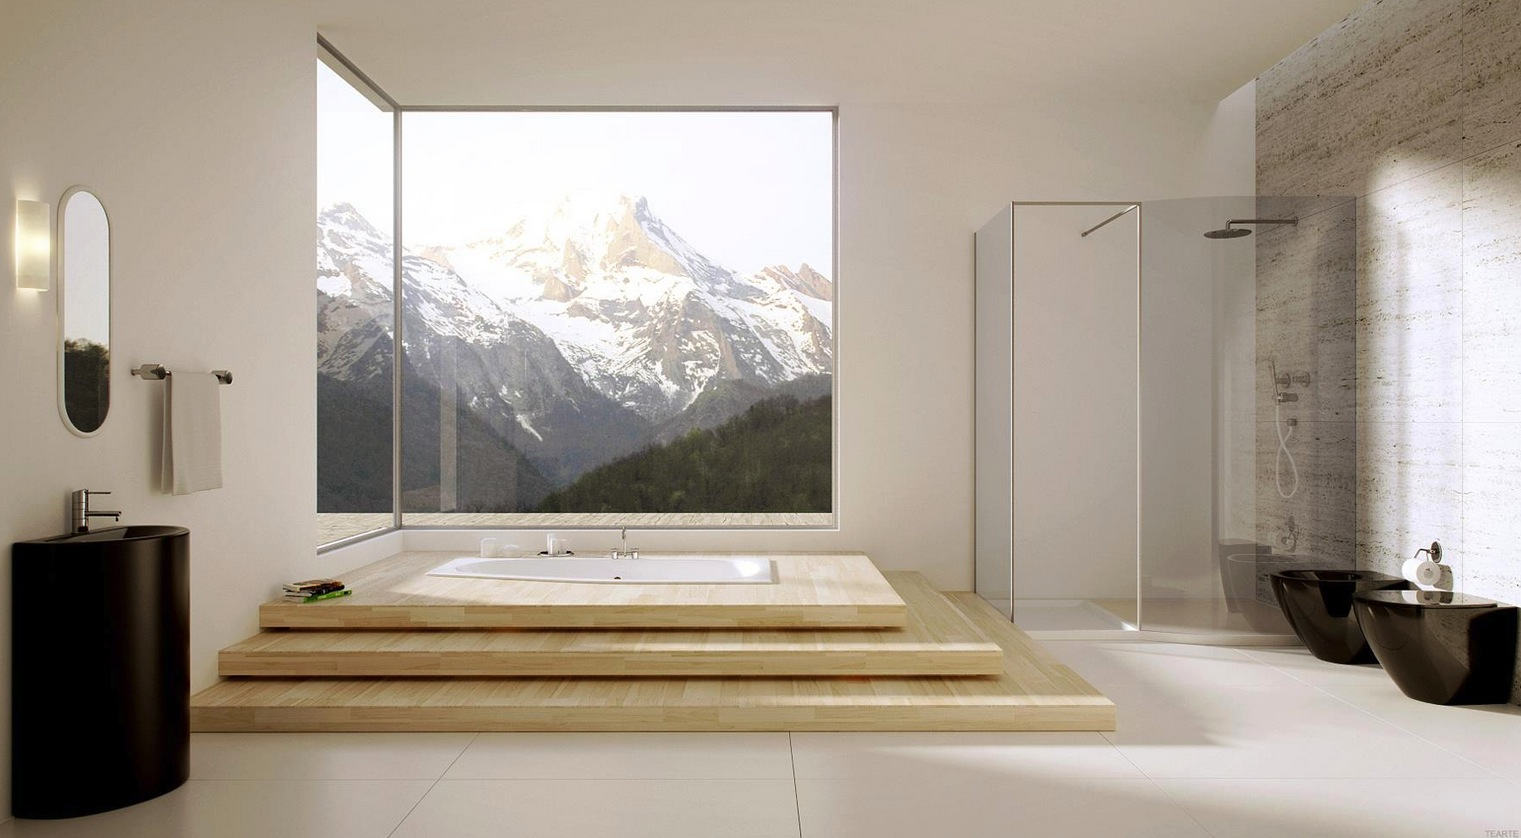 Brilliant Modern Bathroom with Large Windows 1521 x 838 · 241 kB · jpeg